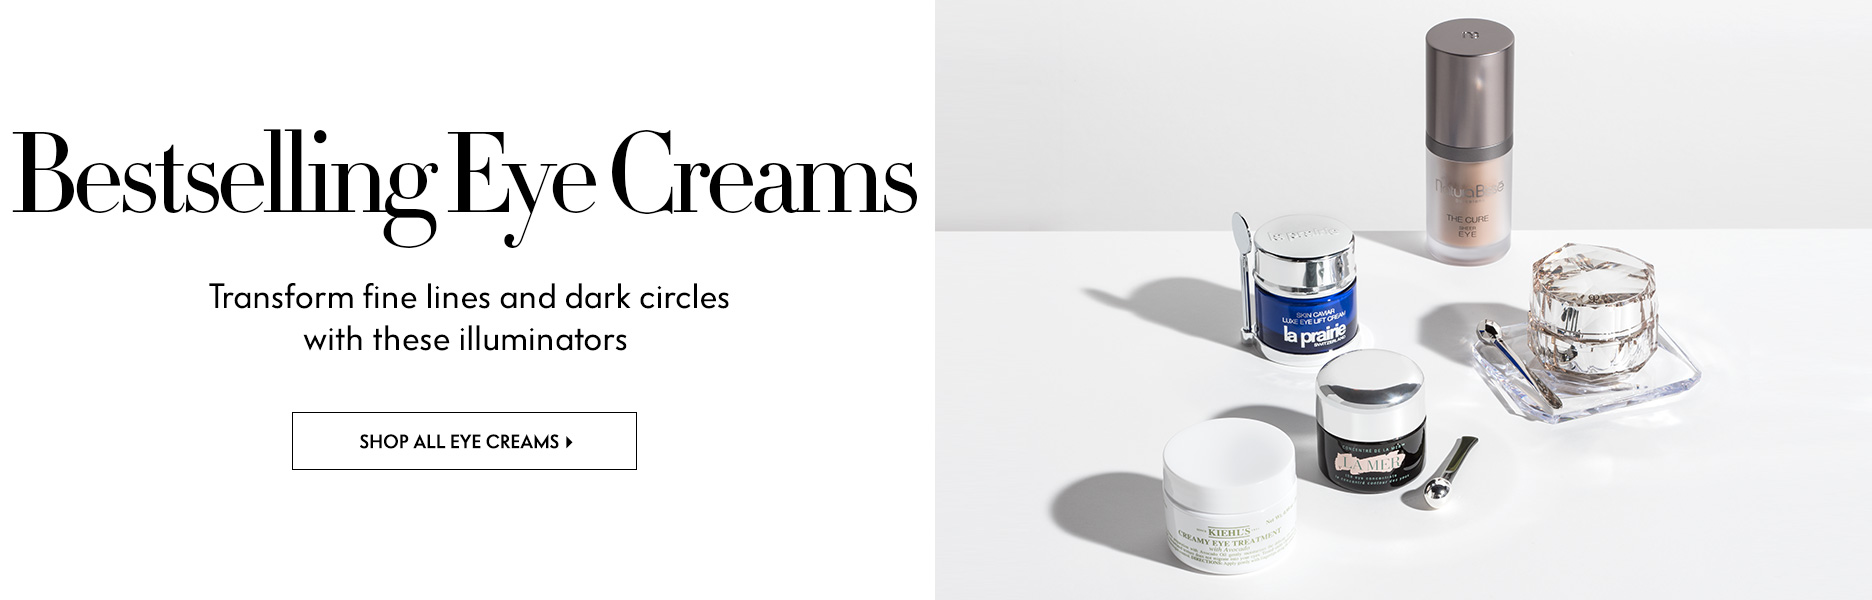 Eye Creams - Transform fine lines and dark circles with these illuminators